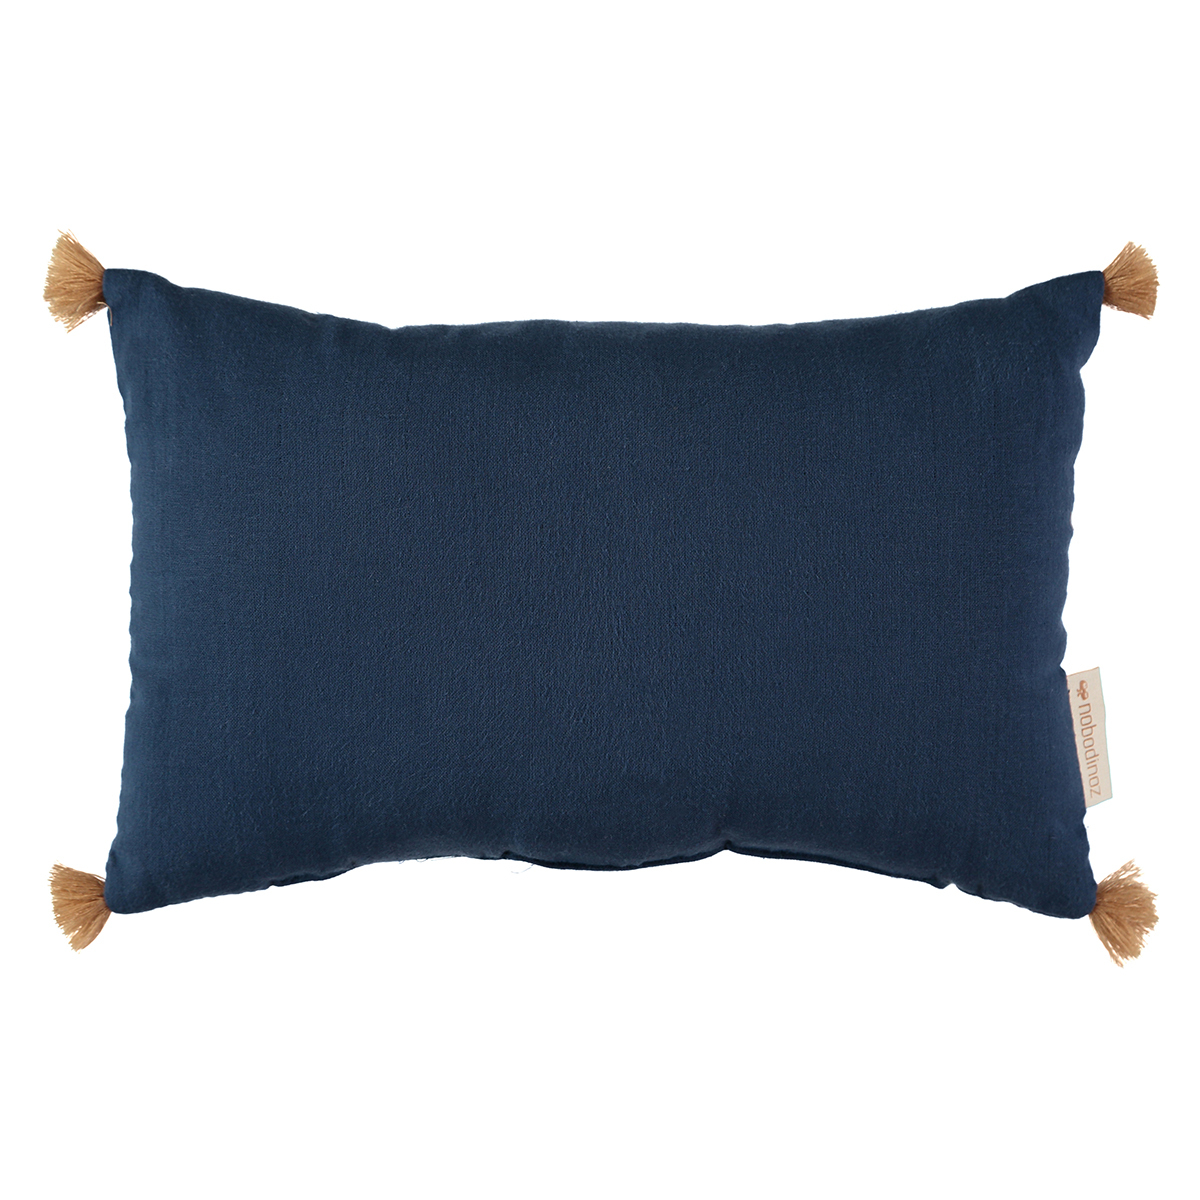 Coussin Coussin Sublim - Midnight Blue Coussin Sublim - Midnight Blue